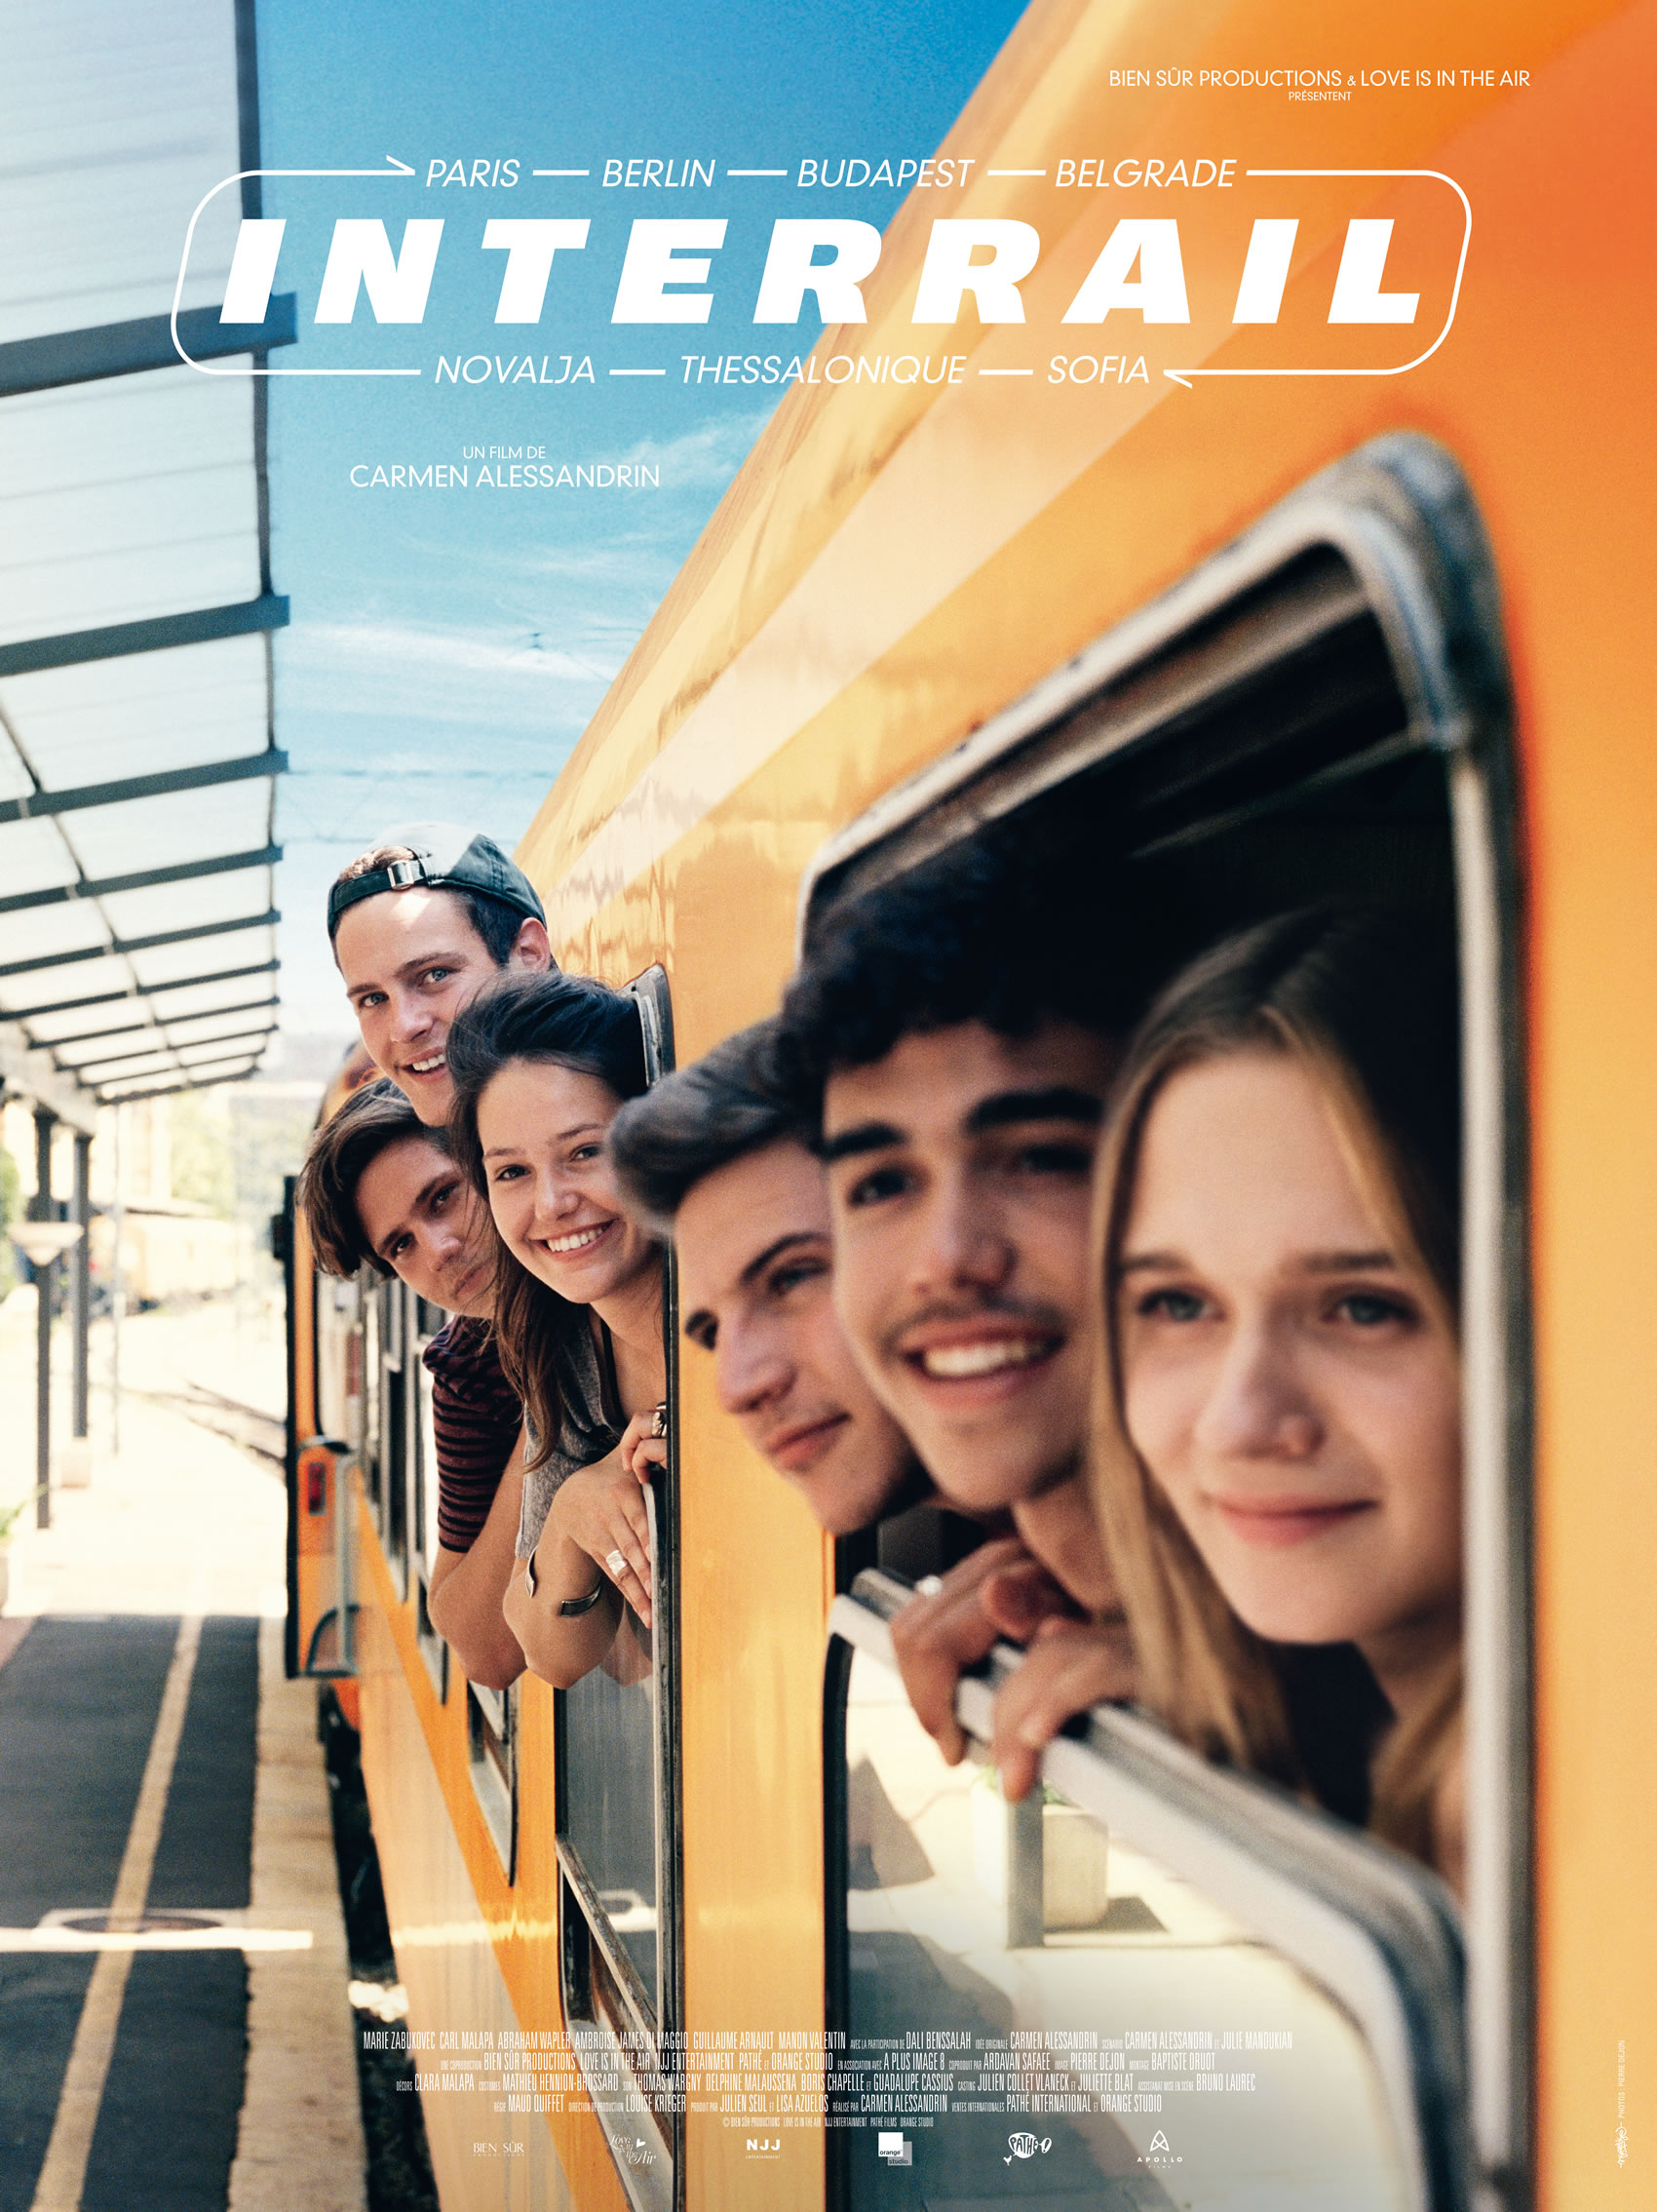 Interrail - images courtesy: Apollo Films